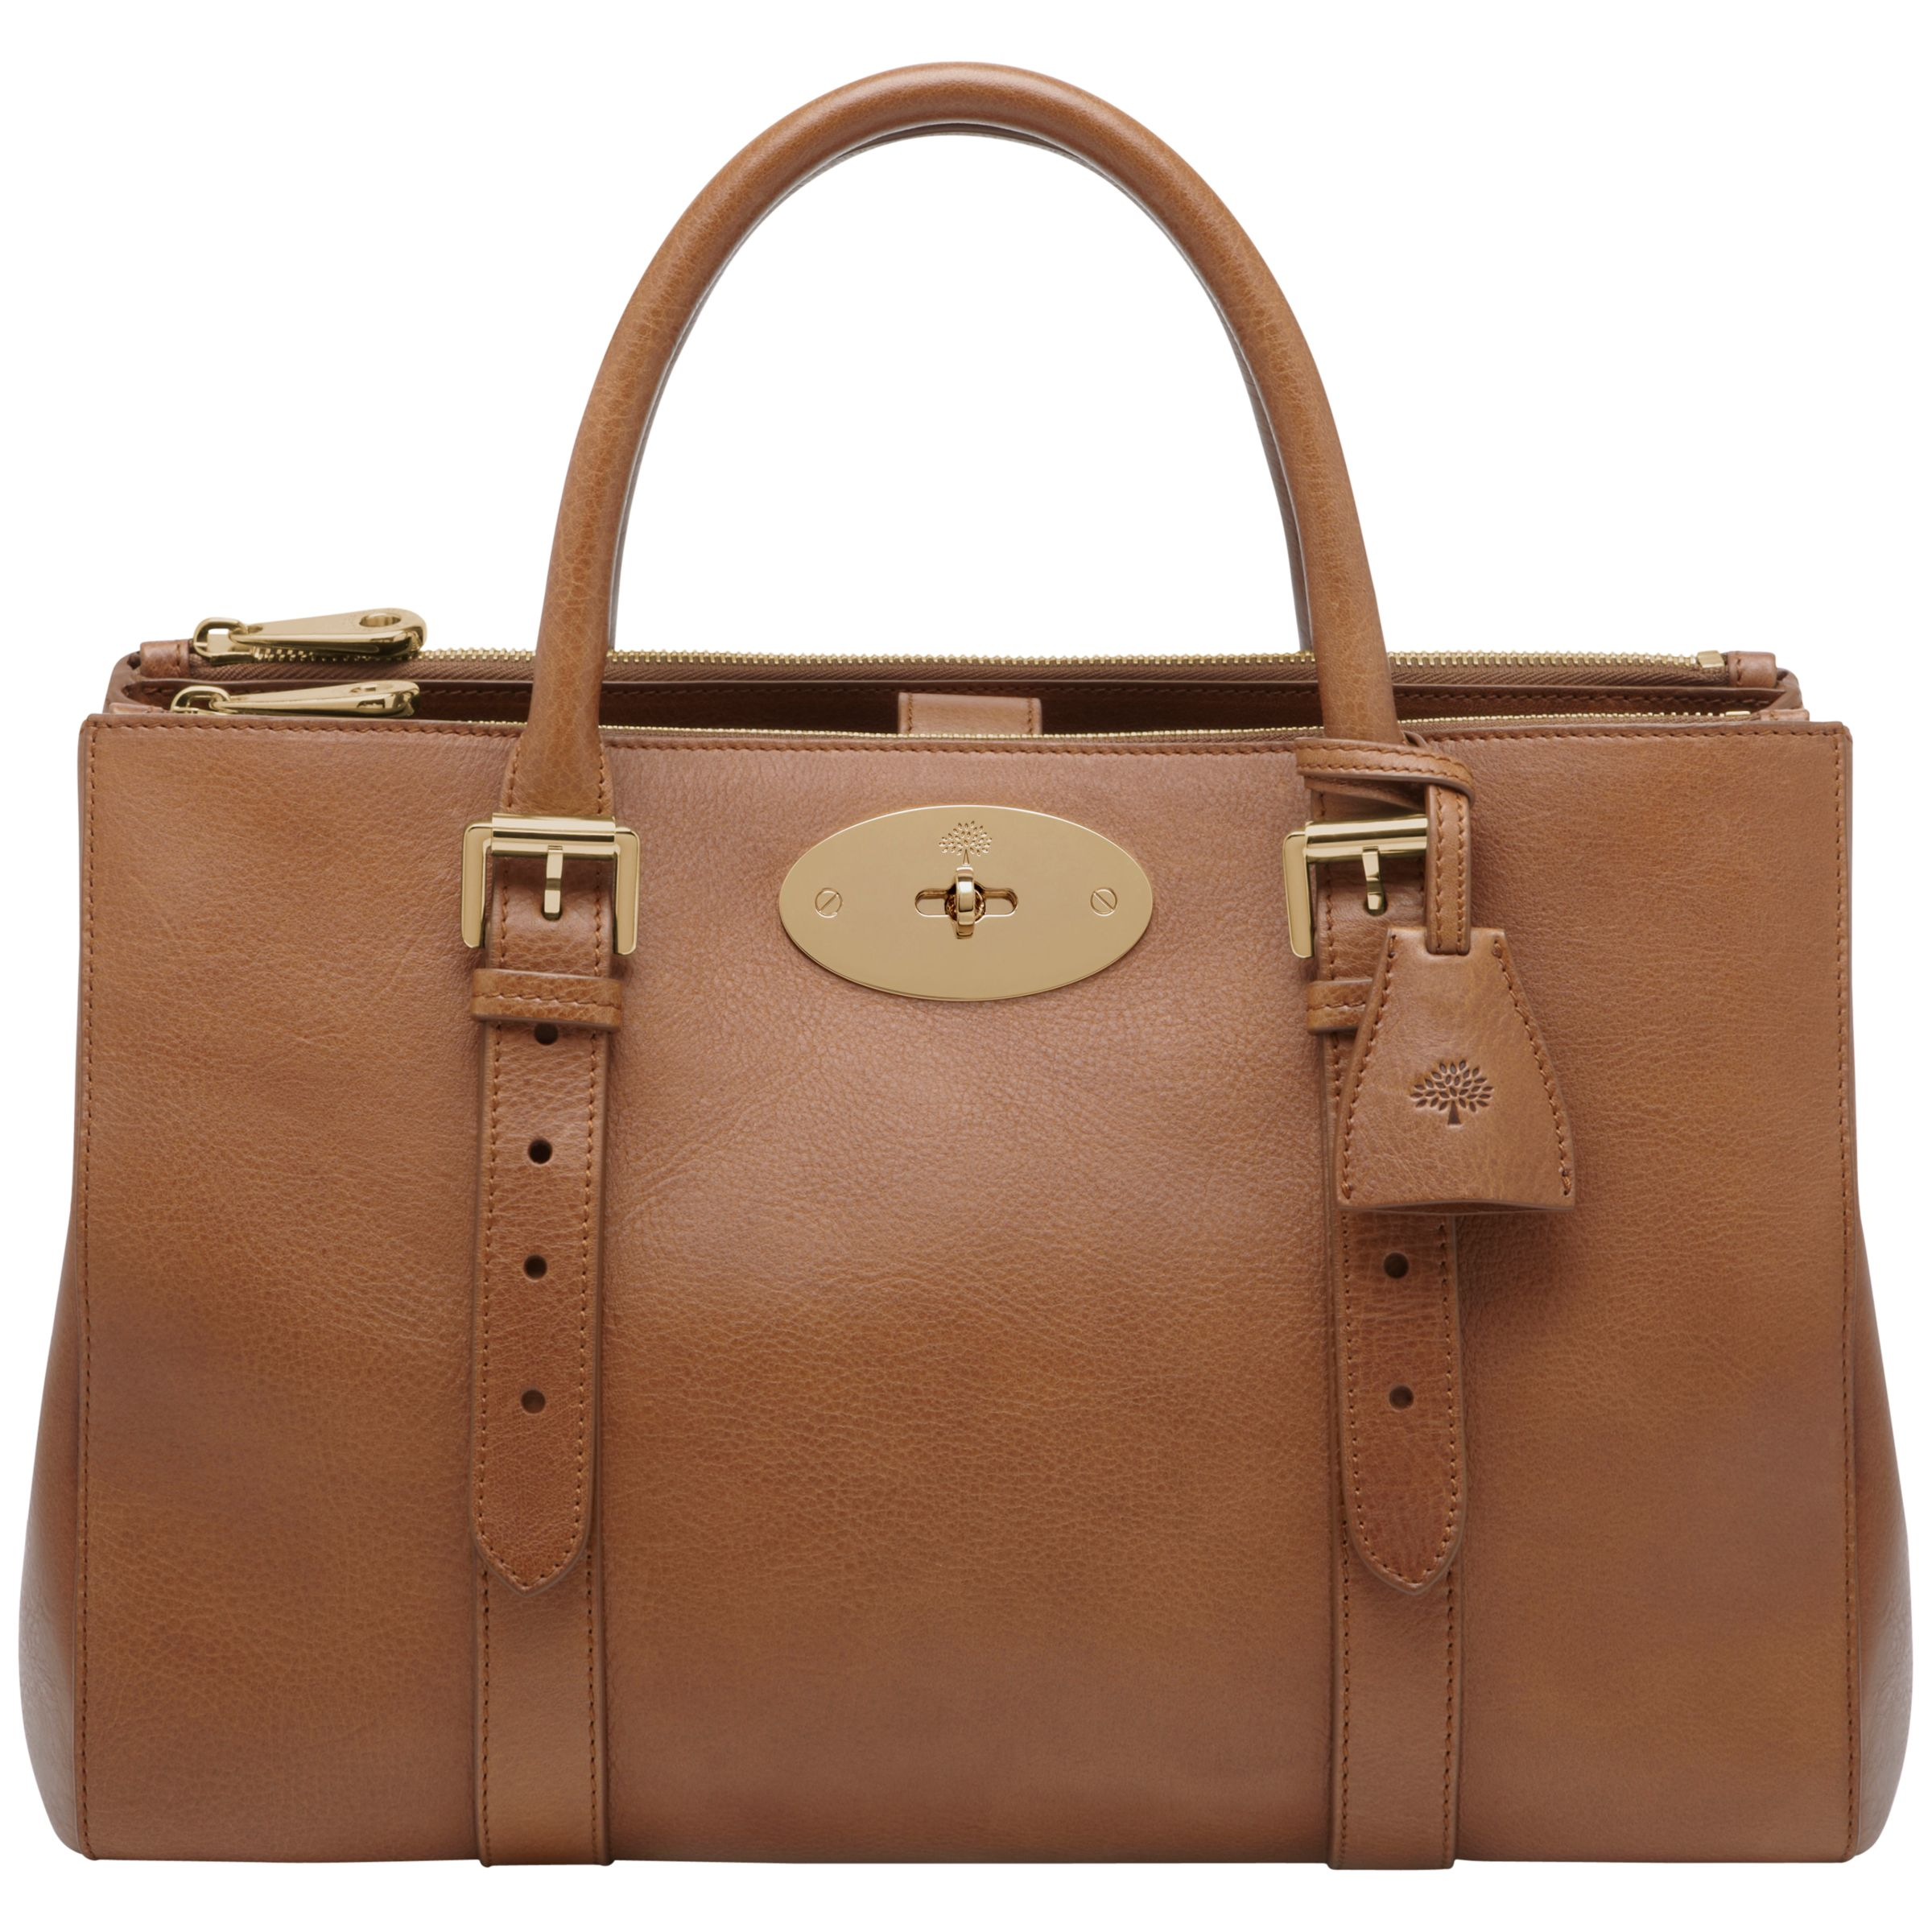 ad835c2dbf1 Mulberry Bayswater Leather Double Zip Tote Bag, Oak at John Lewis   Partners